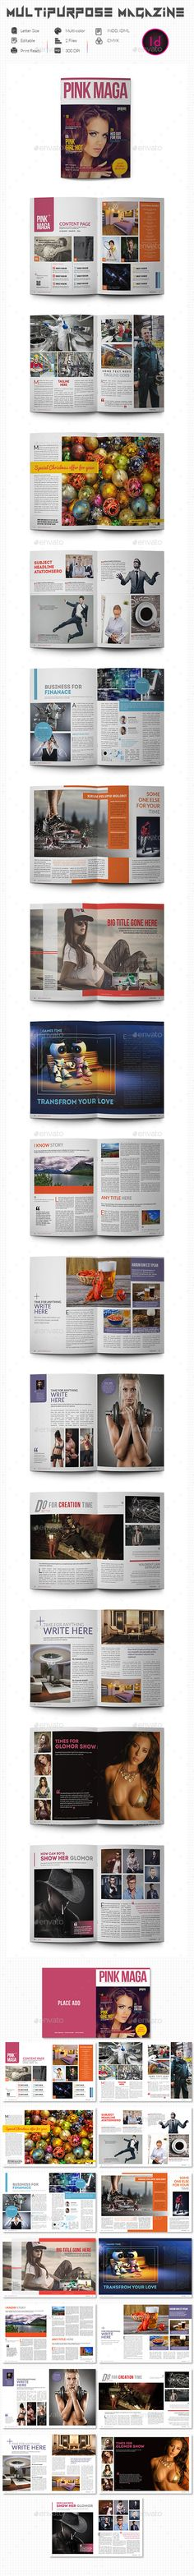 Multipurpose Magazine #indd idml magazine #multipurpose magazine Download : https://graphicriver.net/item/multipurpose-magazine/14035548?ref=pxcr